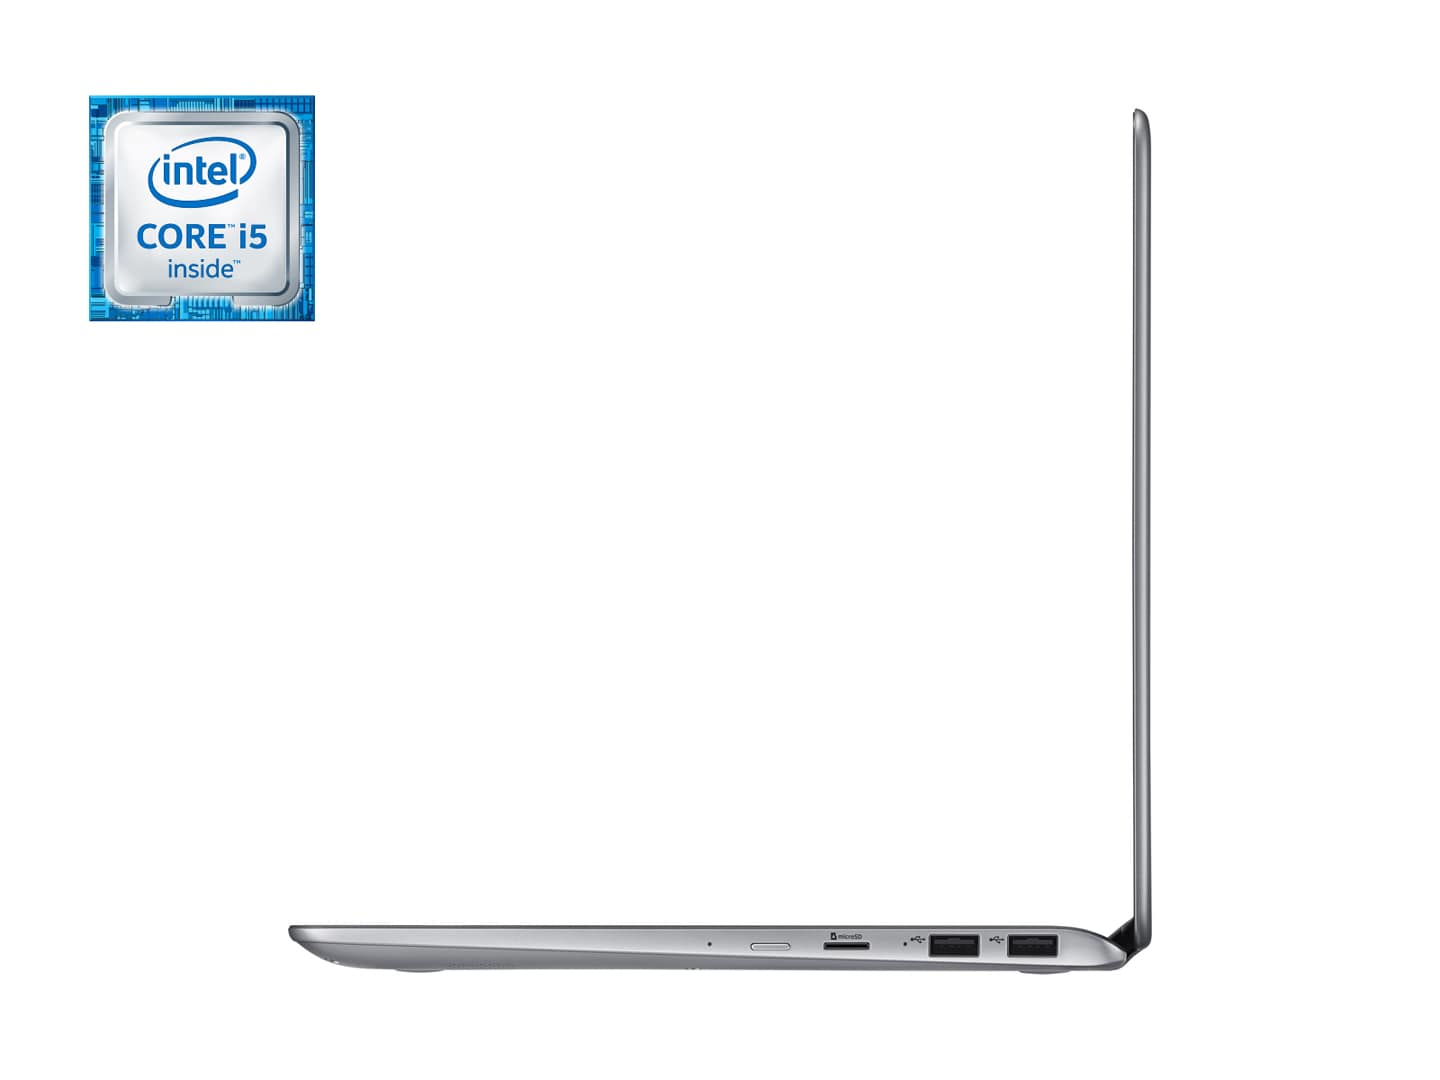 Samsung Notebook 9 NP940X3M-K03US